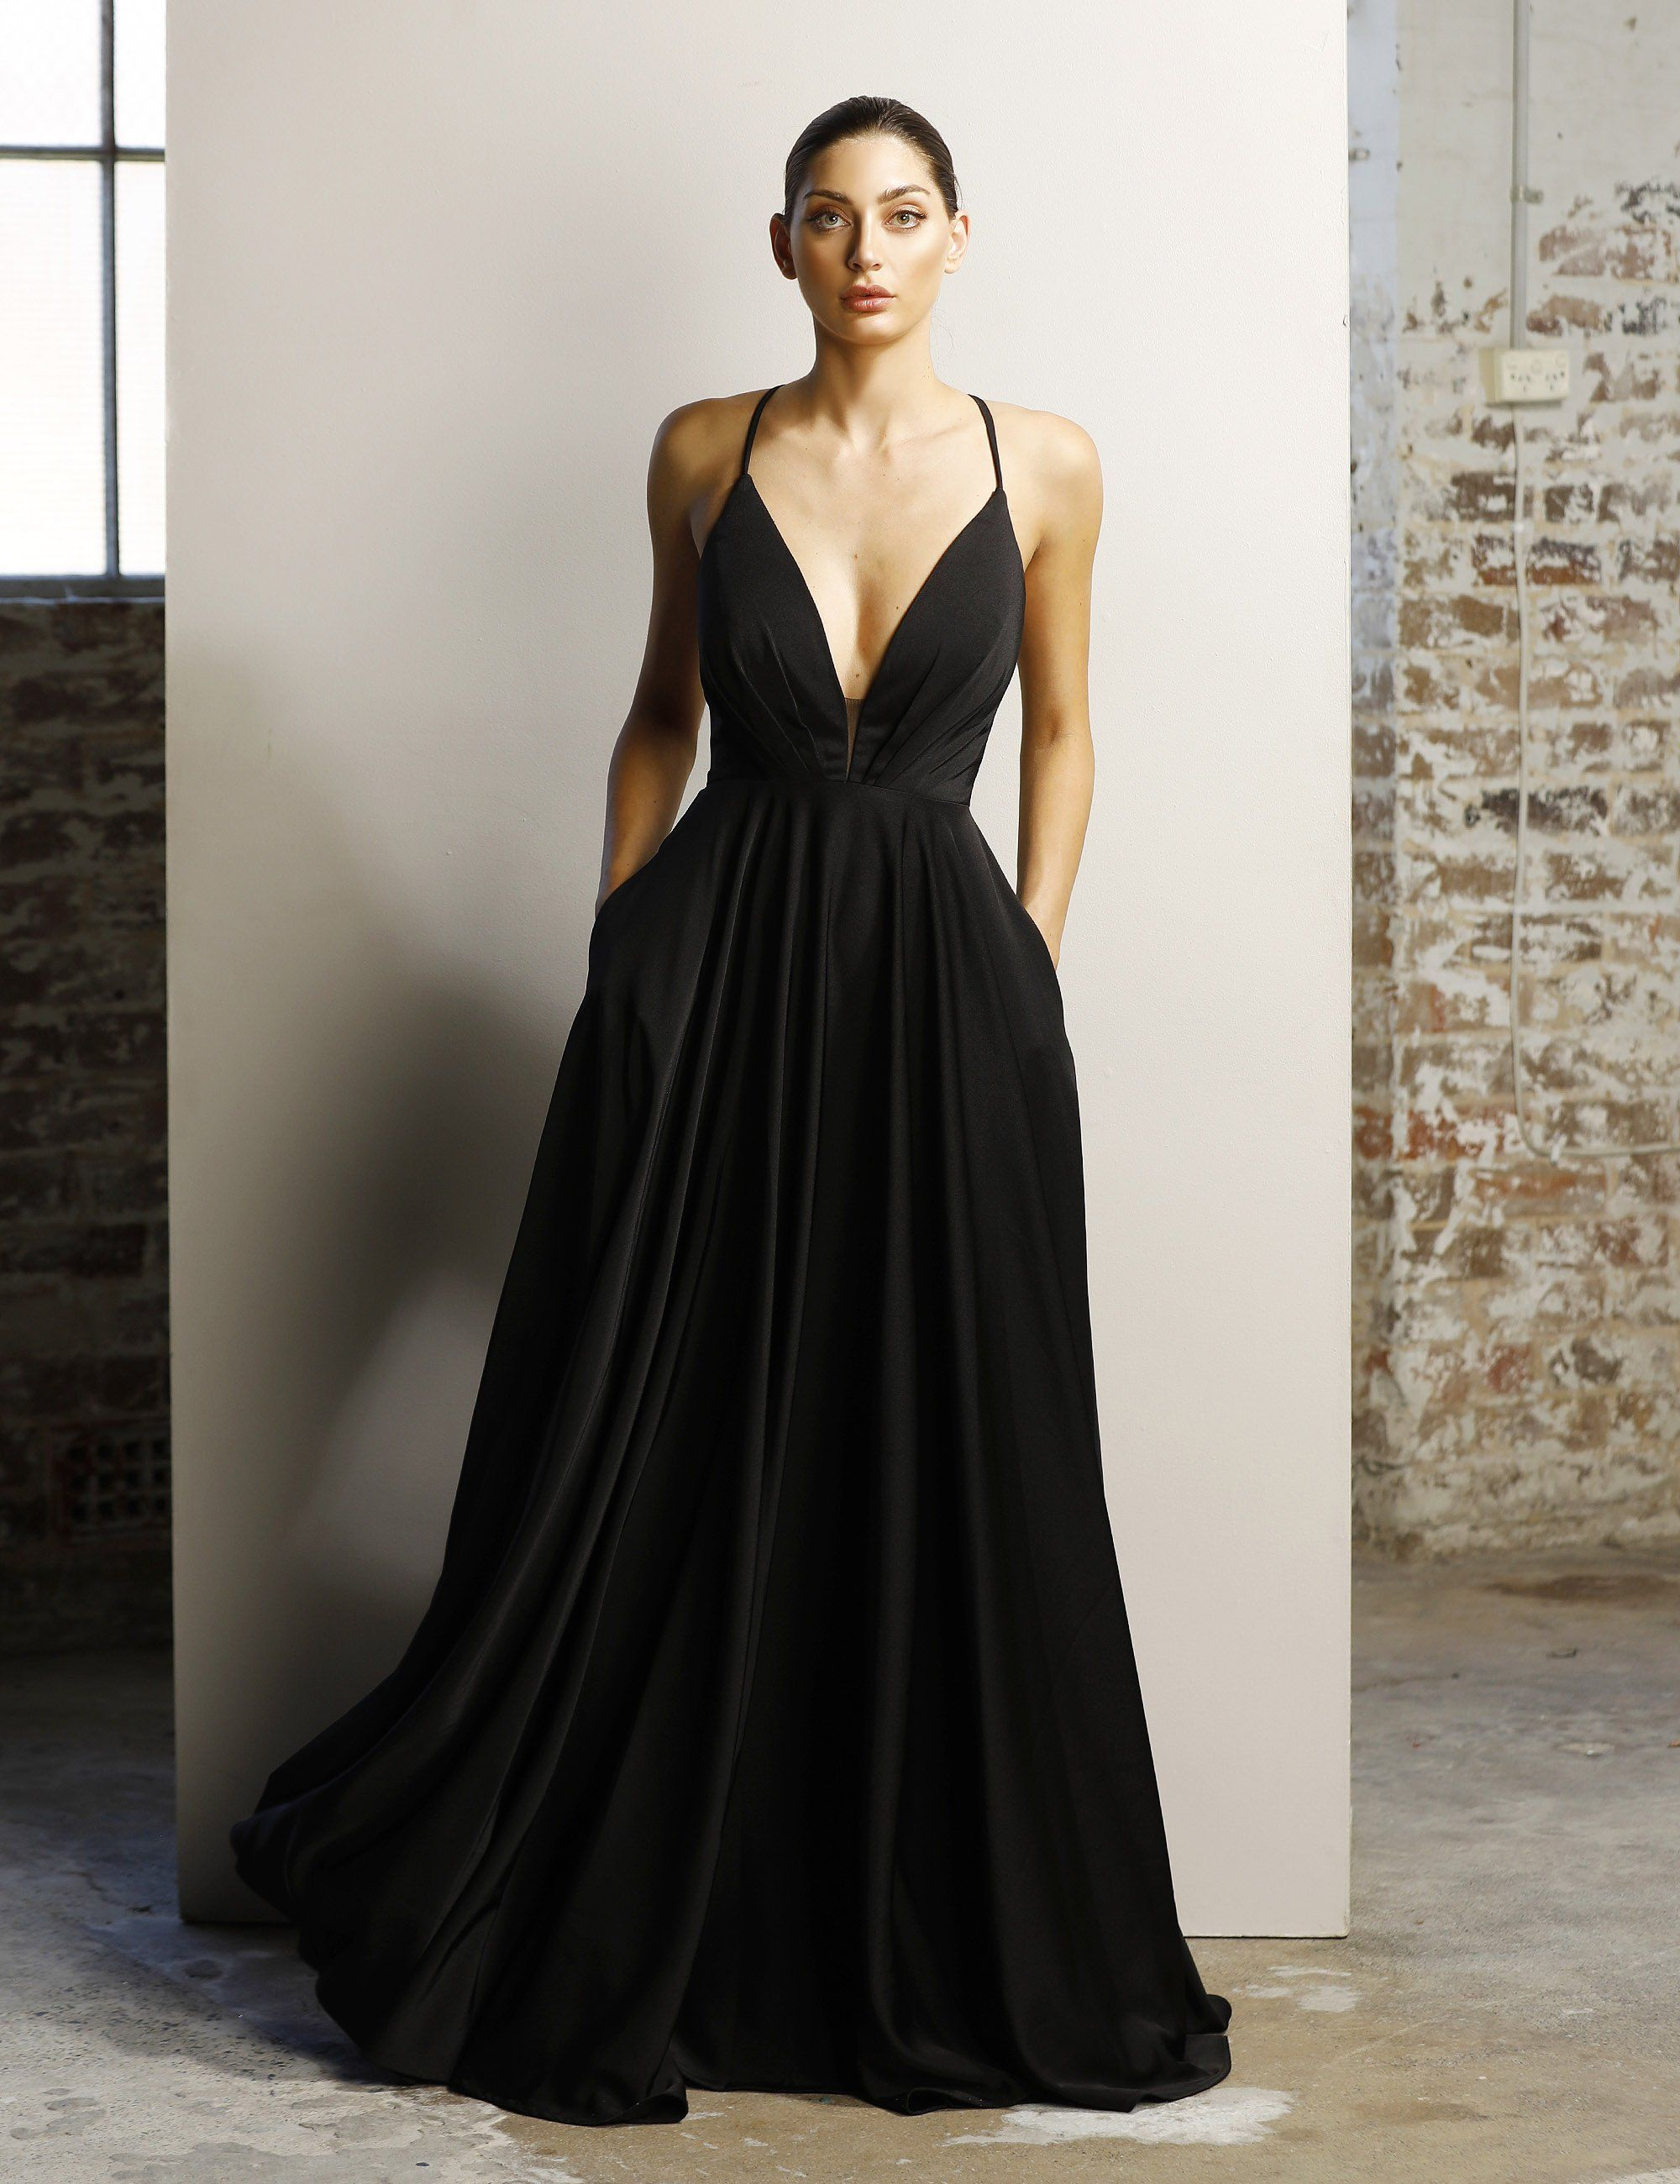 Jx1064 | Gowns, Evening gowns, Prom dresses